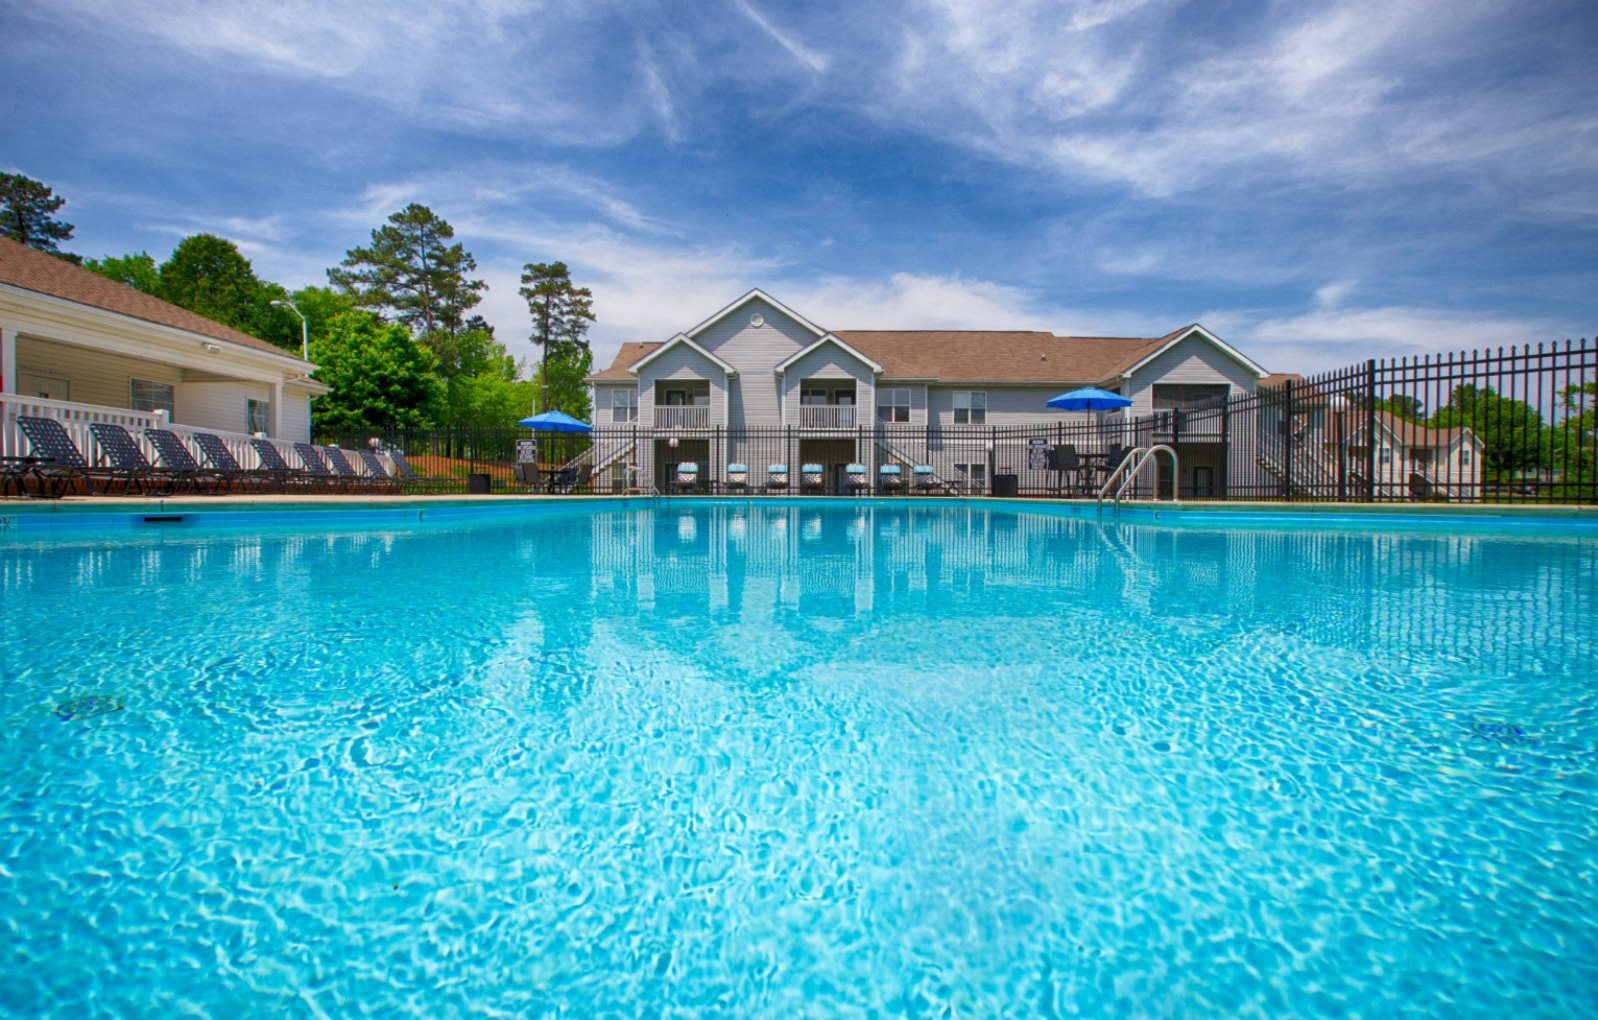 Pool at Northridge Crossing Apartments in Raleigh